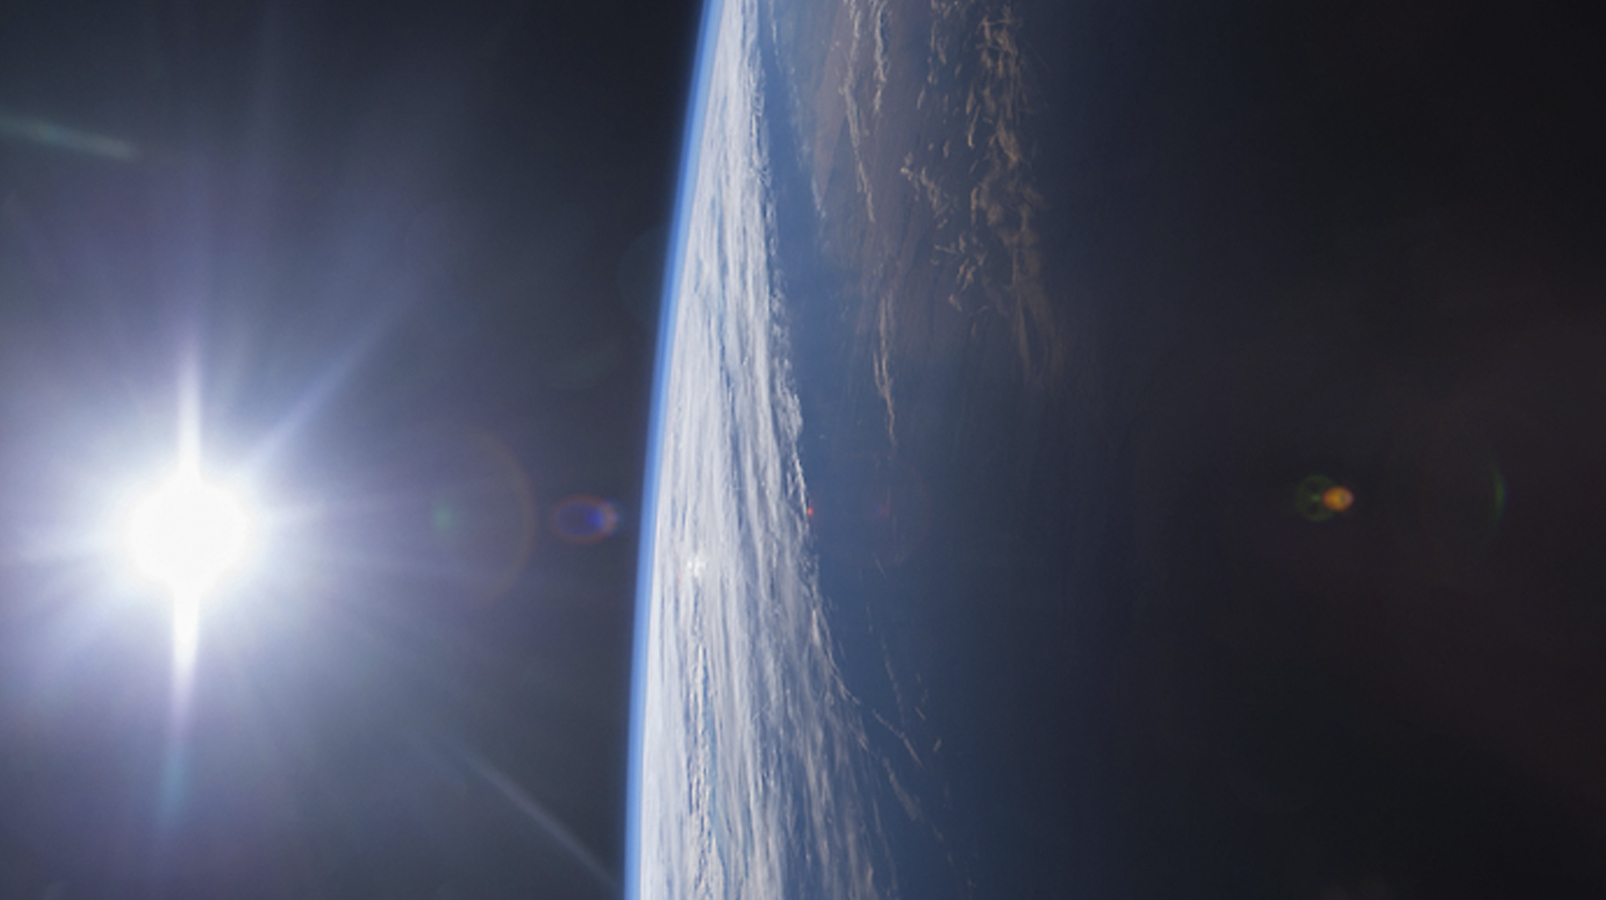 The Gulf of Mexico and U.S. Gulf Coast at sunset is shown in this image from the International Space Station and posted to social media on December 14, 2014. The space station and its crew orbit Earth from an altitude of 220 miles, traveling at a speed of approximately 17,500 miles per hour. Because the station completes each trip around the globe in about 92 minutes, the crew experiences 16 sunrises and sunsets each day.